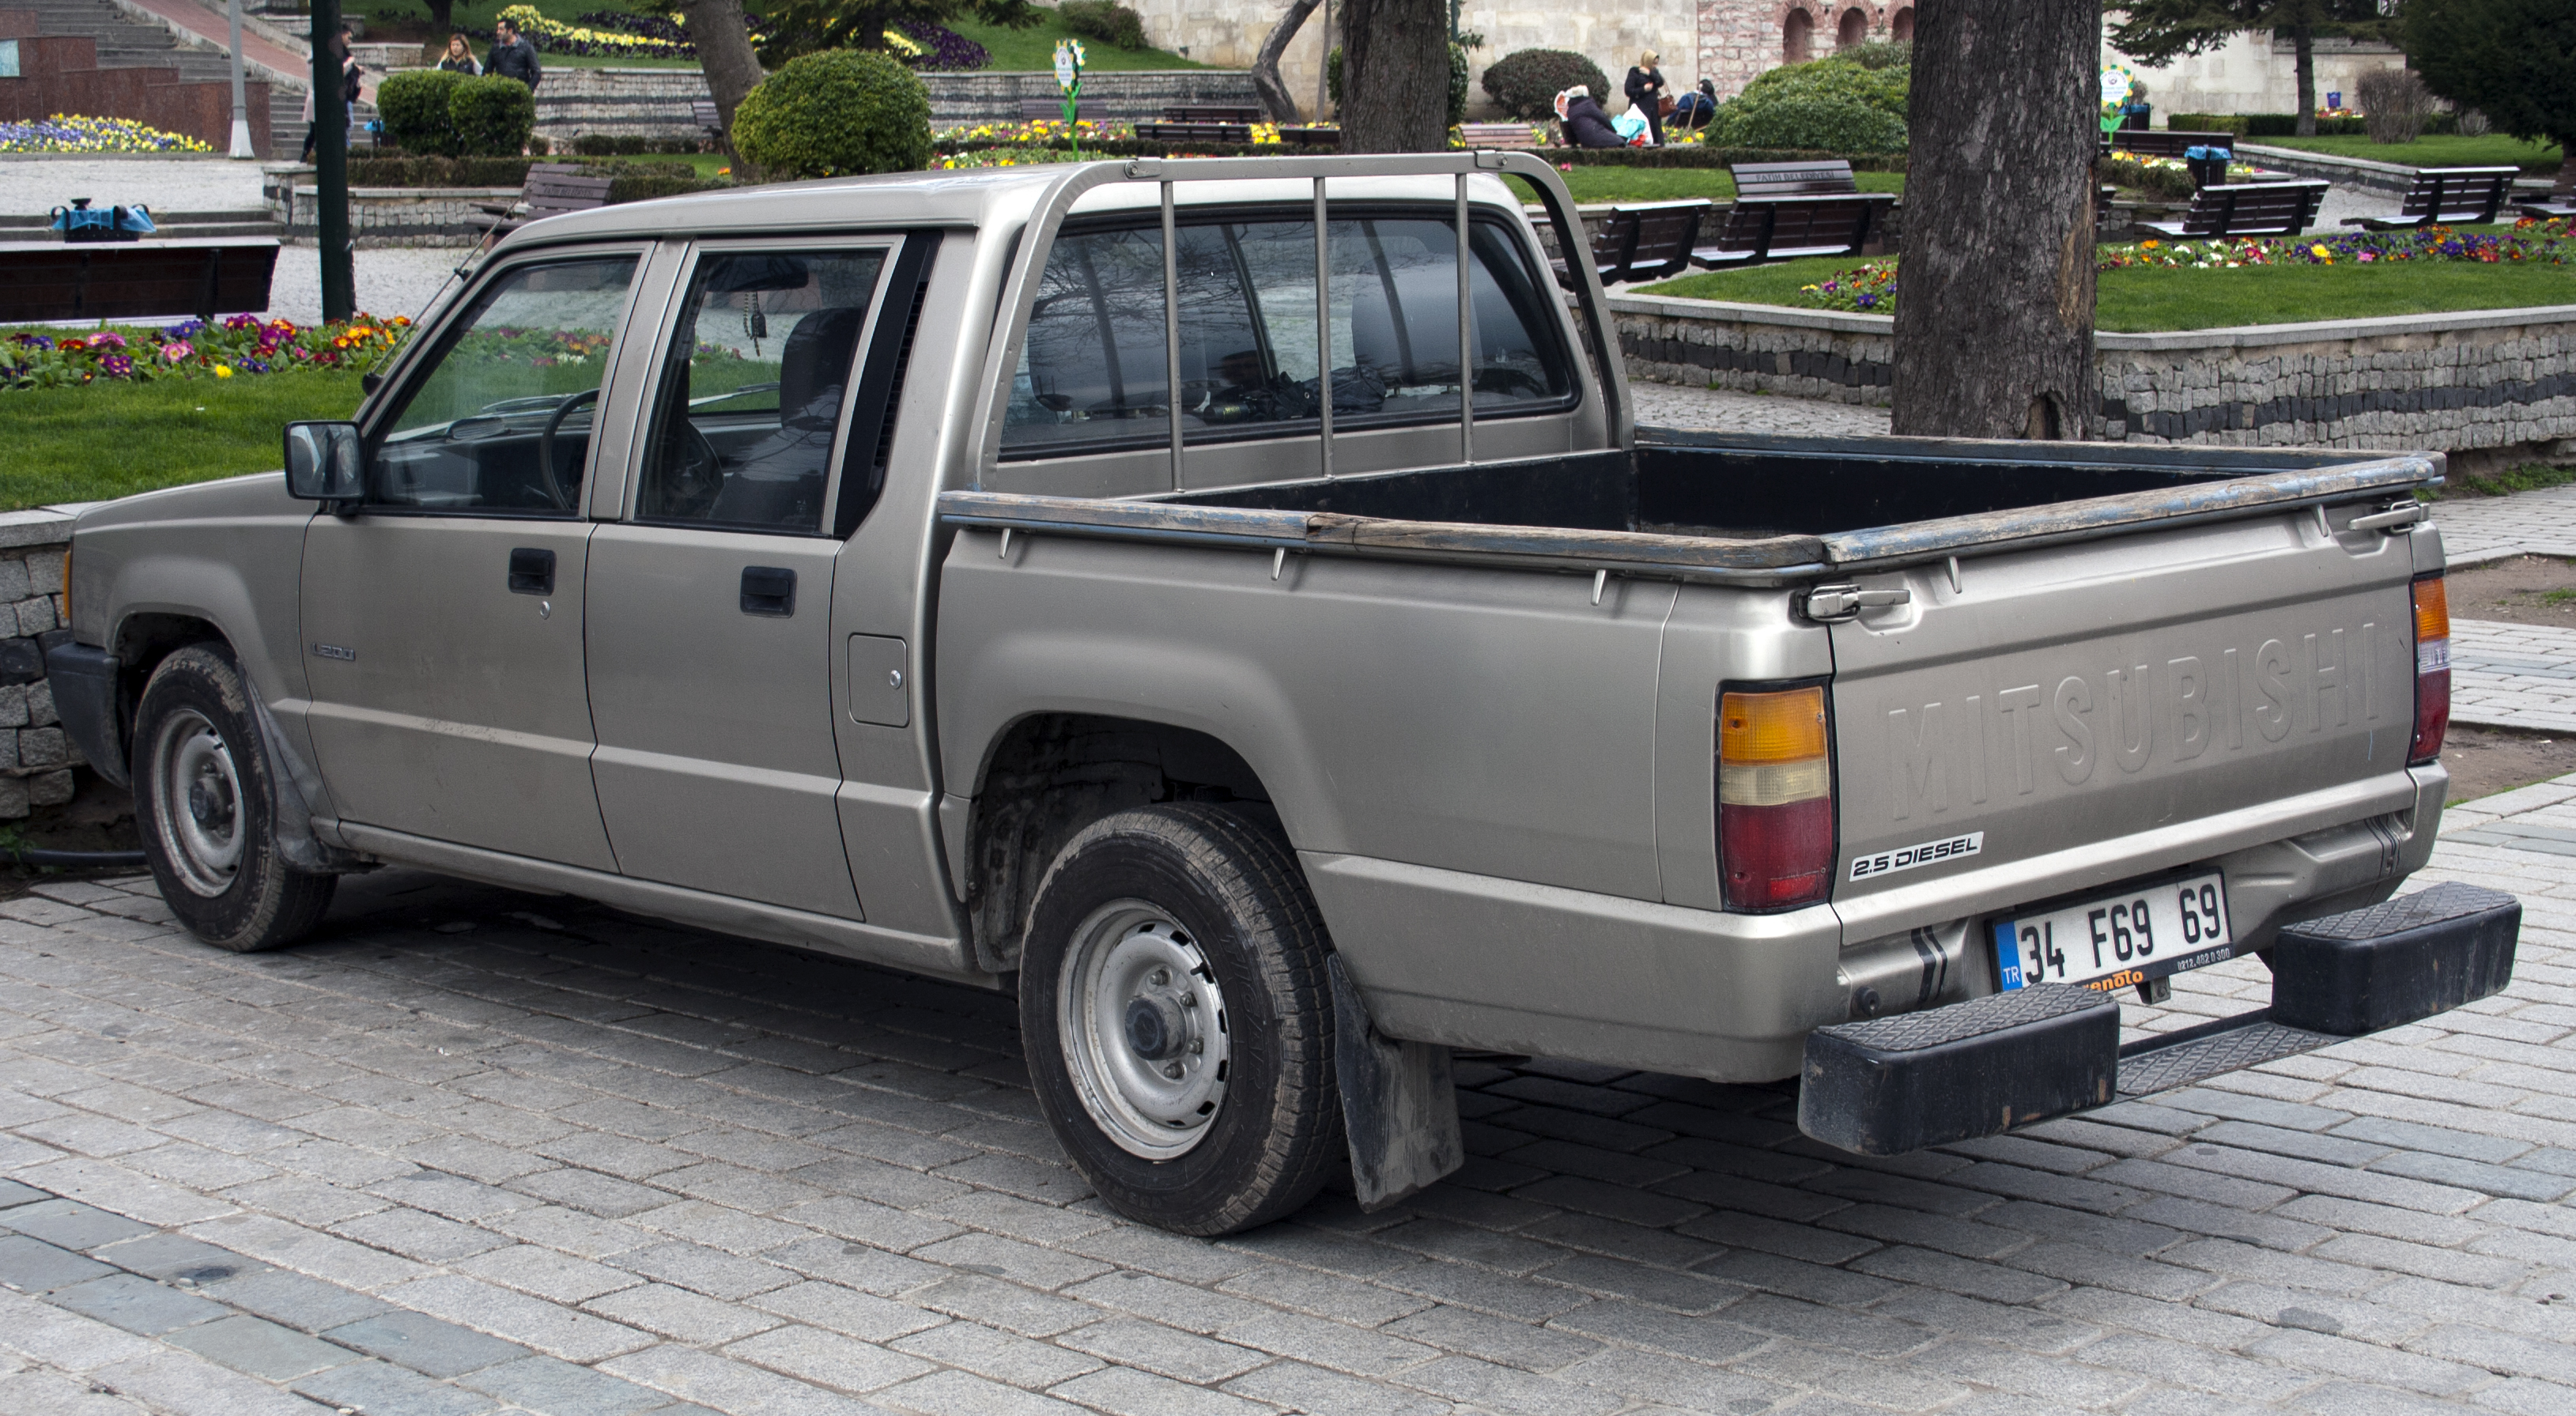 Used Diesel Trucks >> File:Mitsubishi L200 2.5 Diesel 2WD double cab rear.jpg - Wikimedia Commons